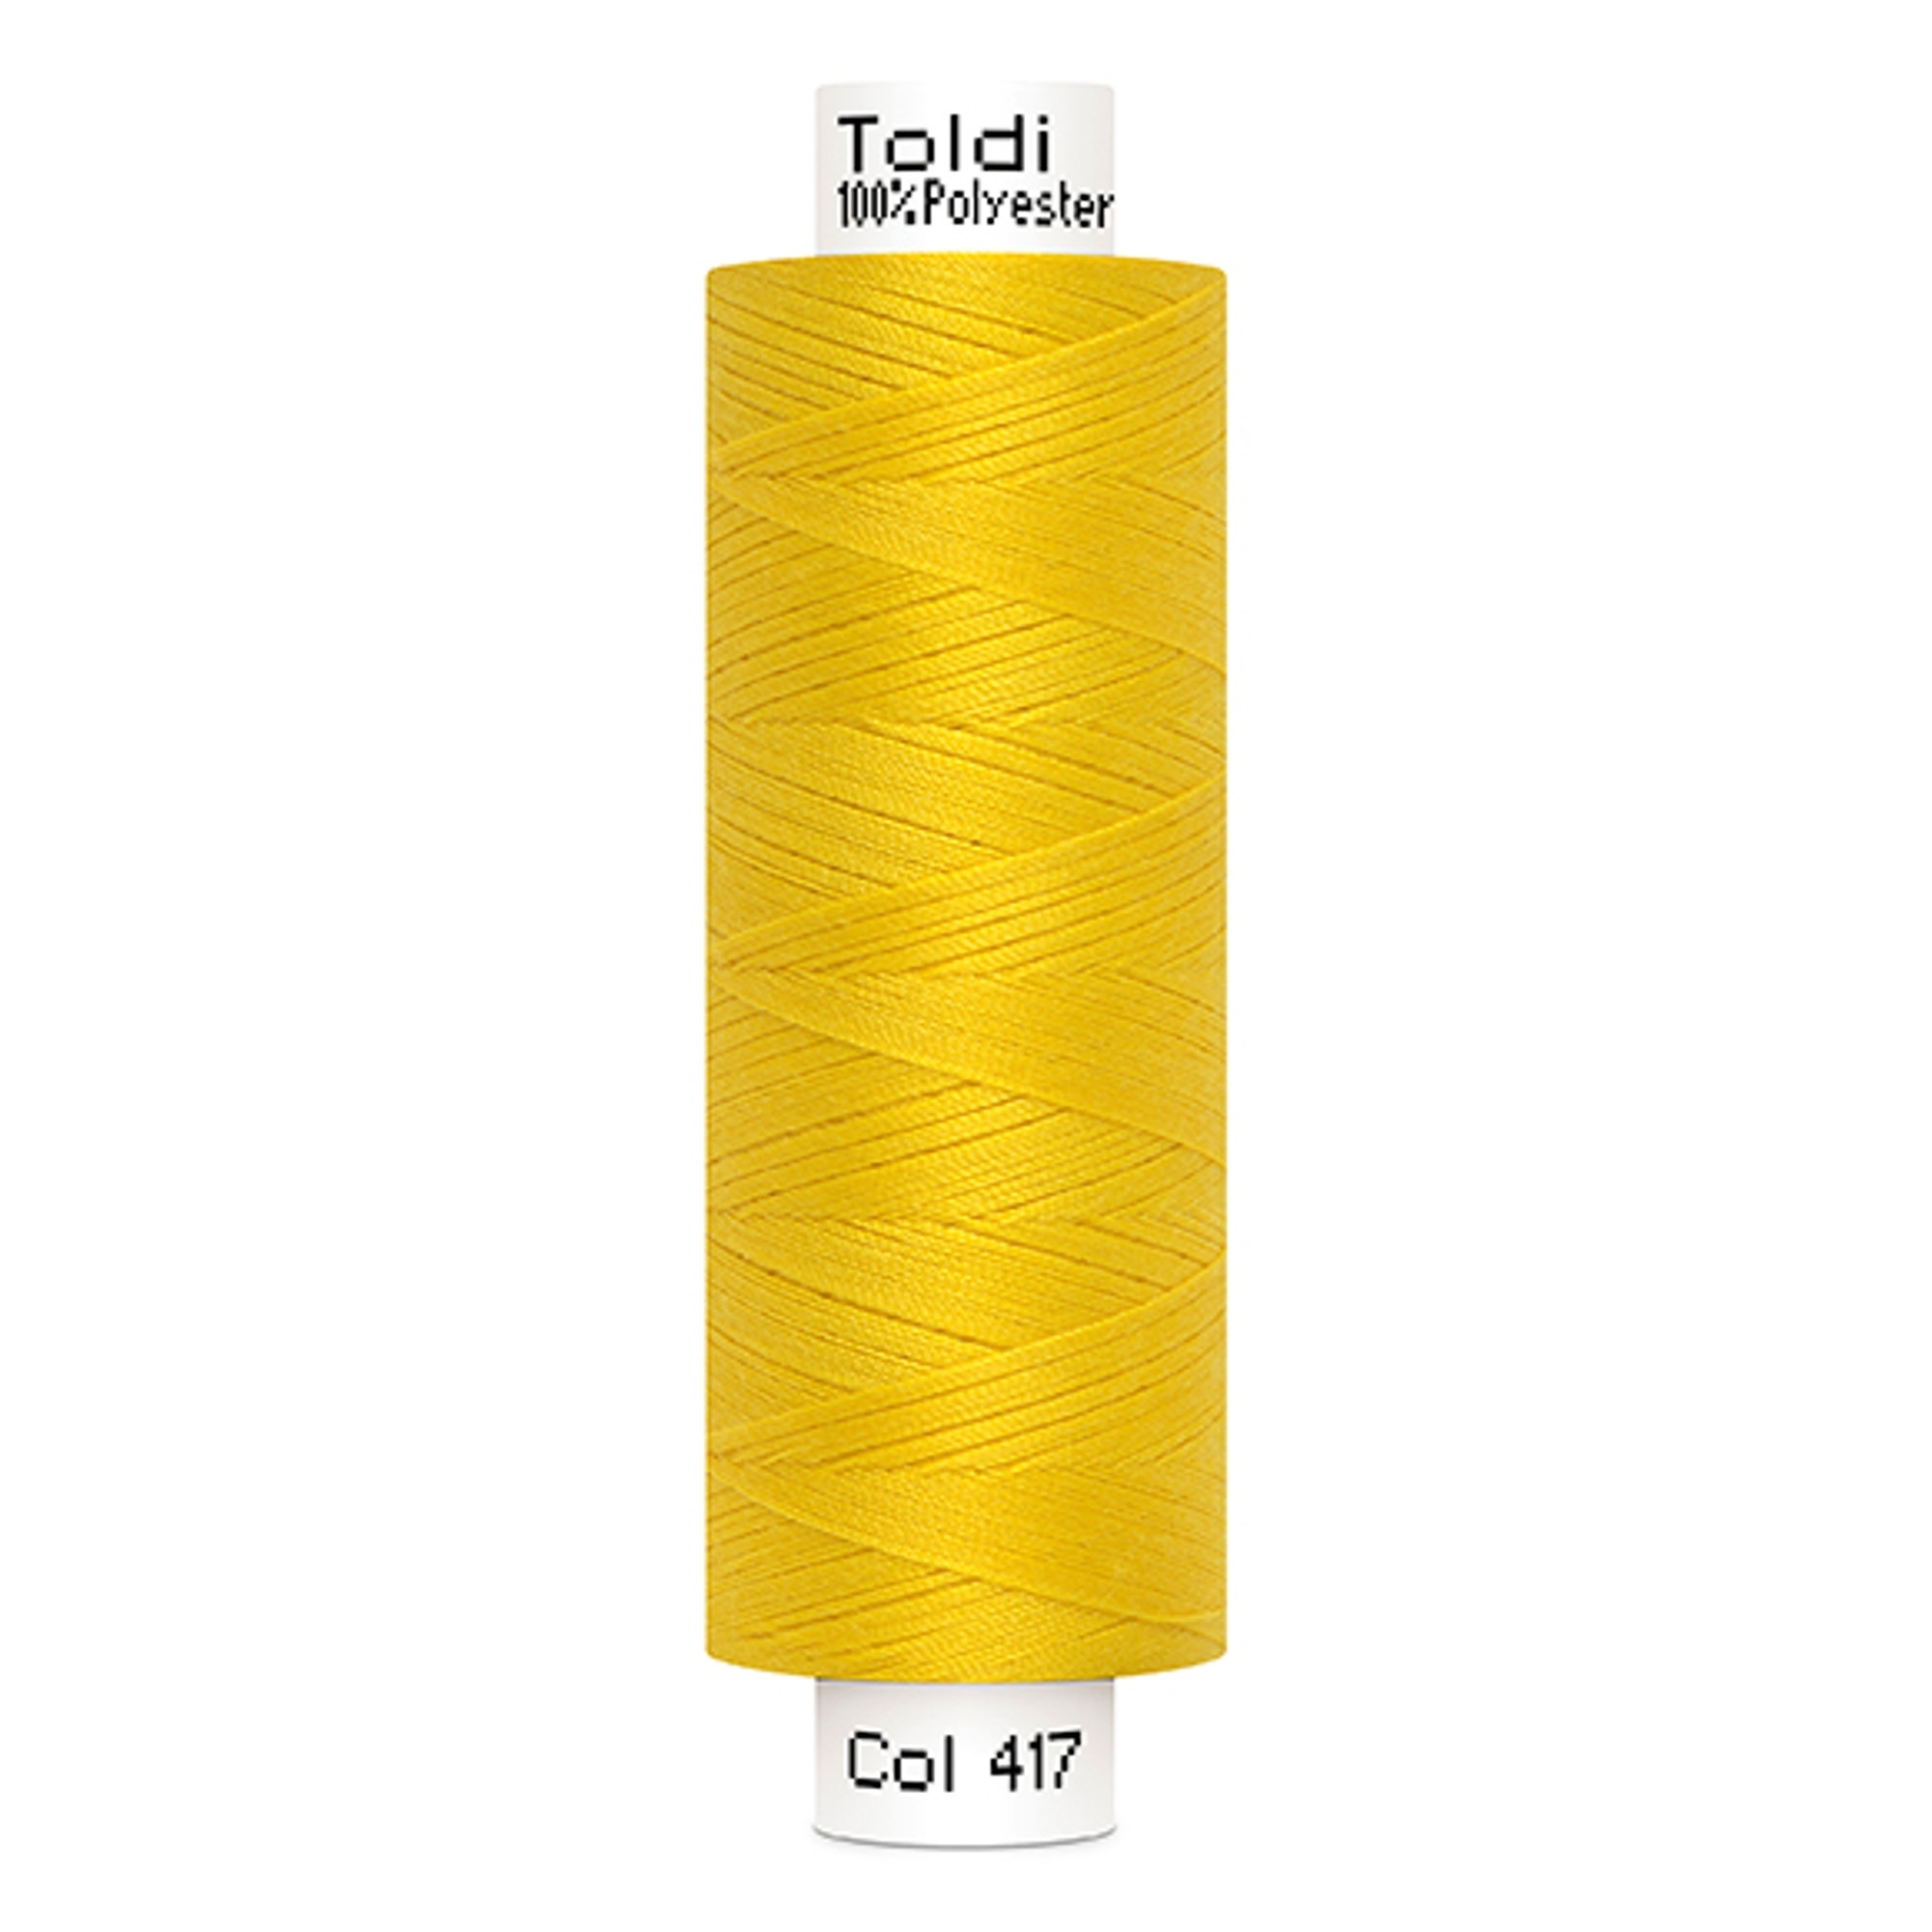 Gütermann Toldi Sewing Thread, 500 m yellow | 707589-417 | gelb